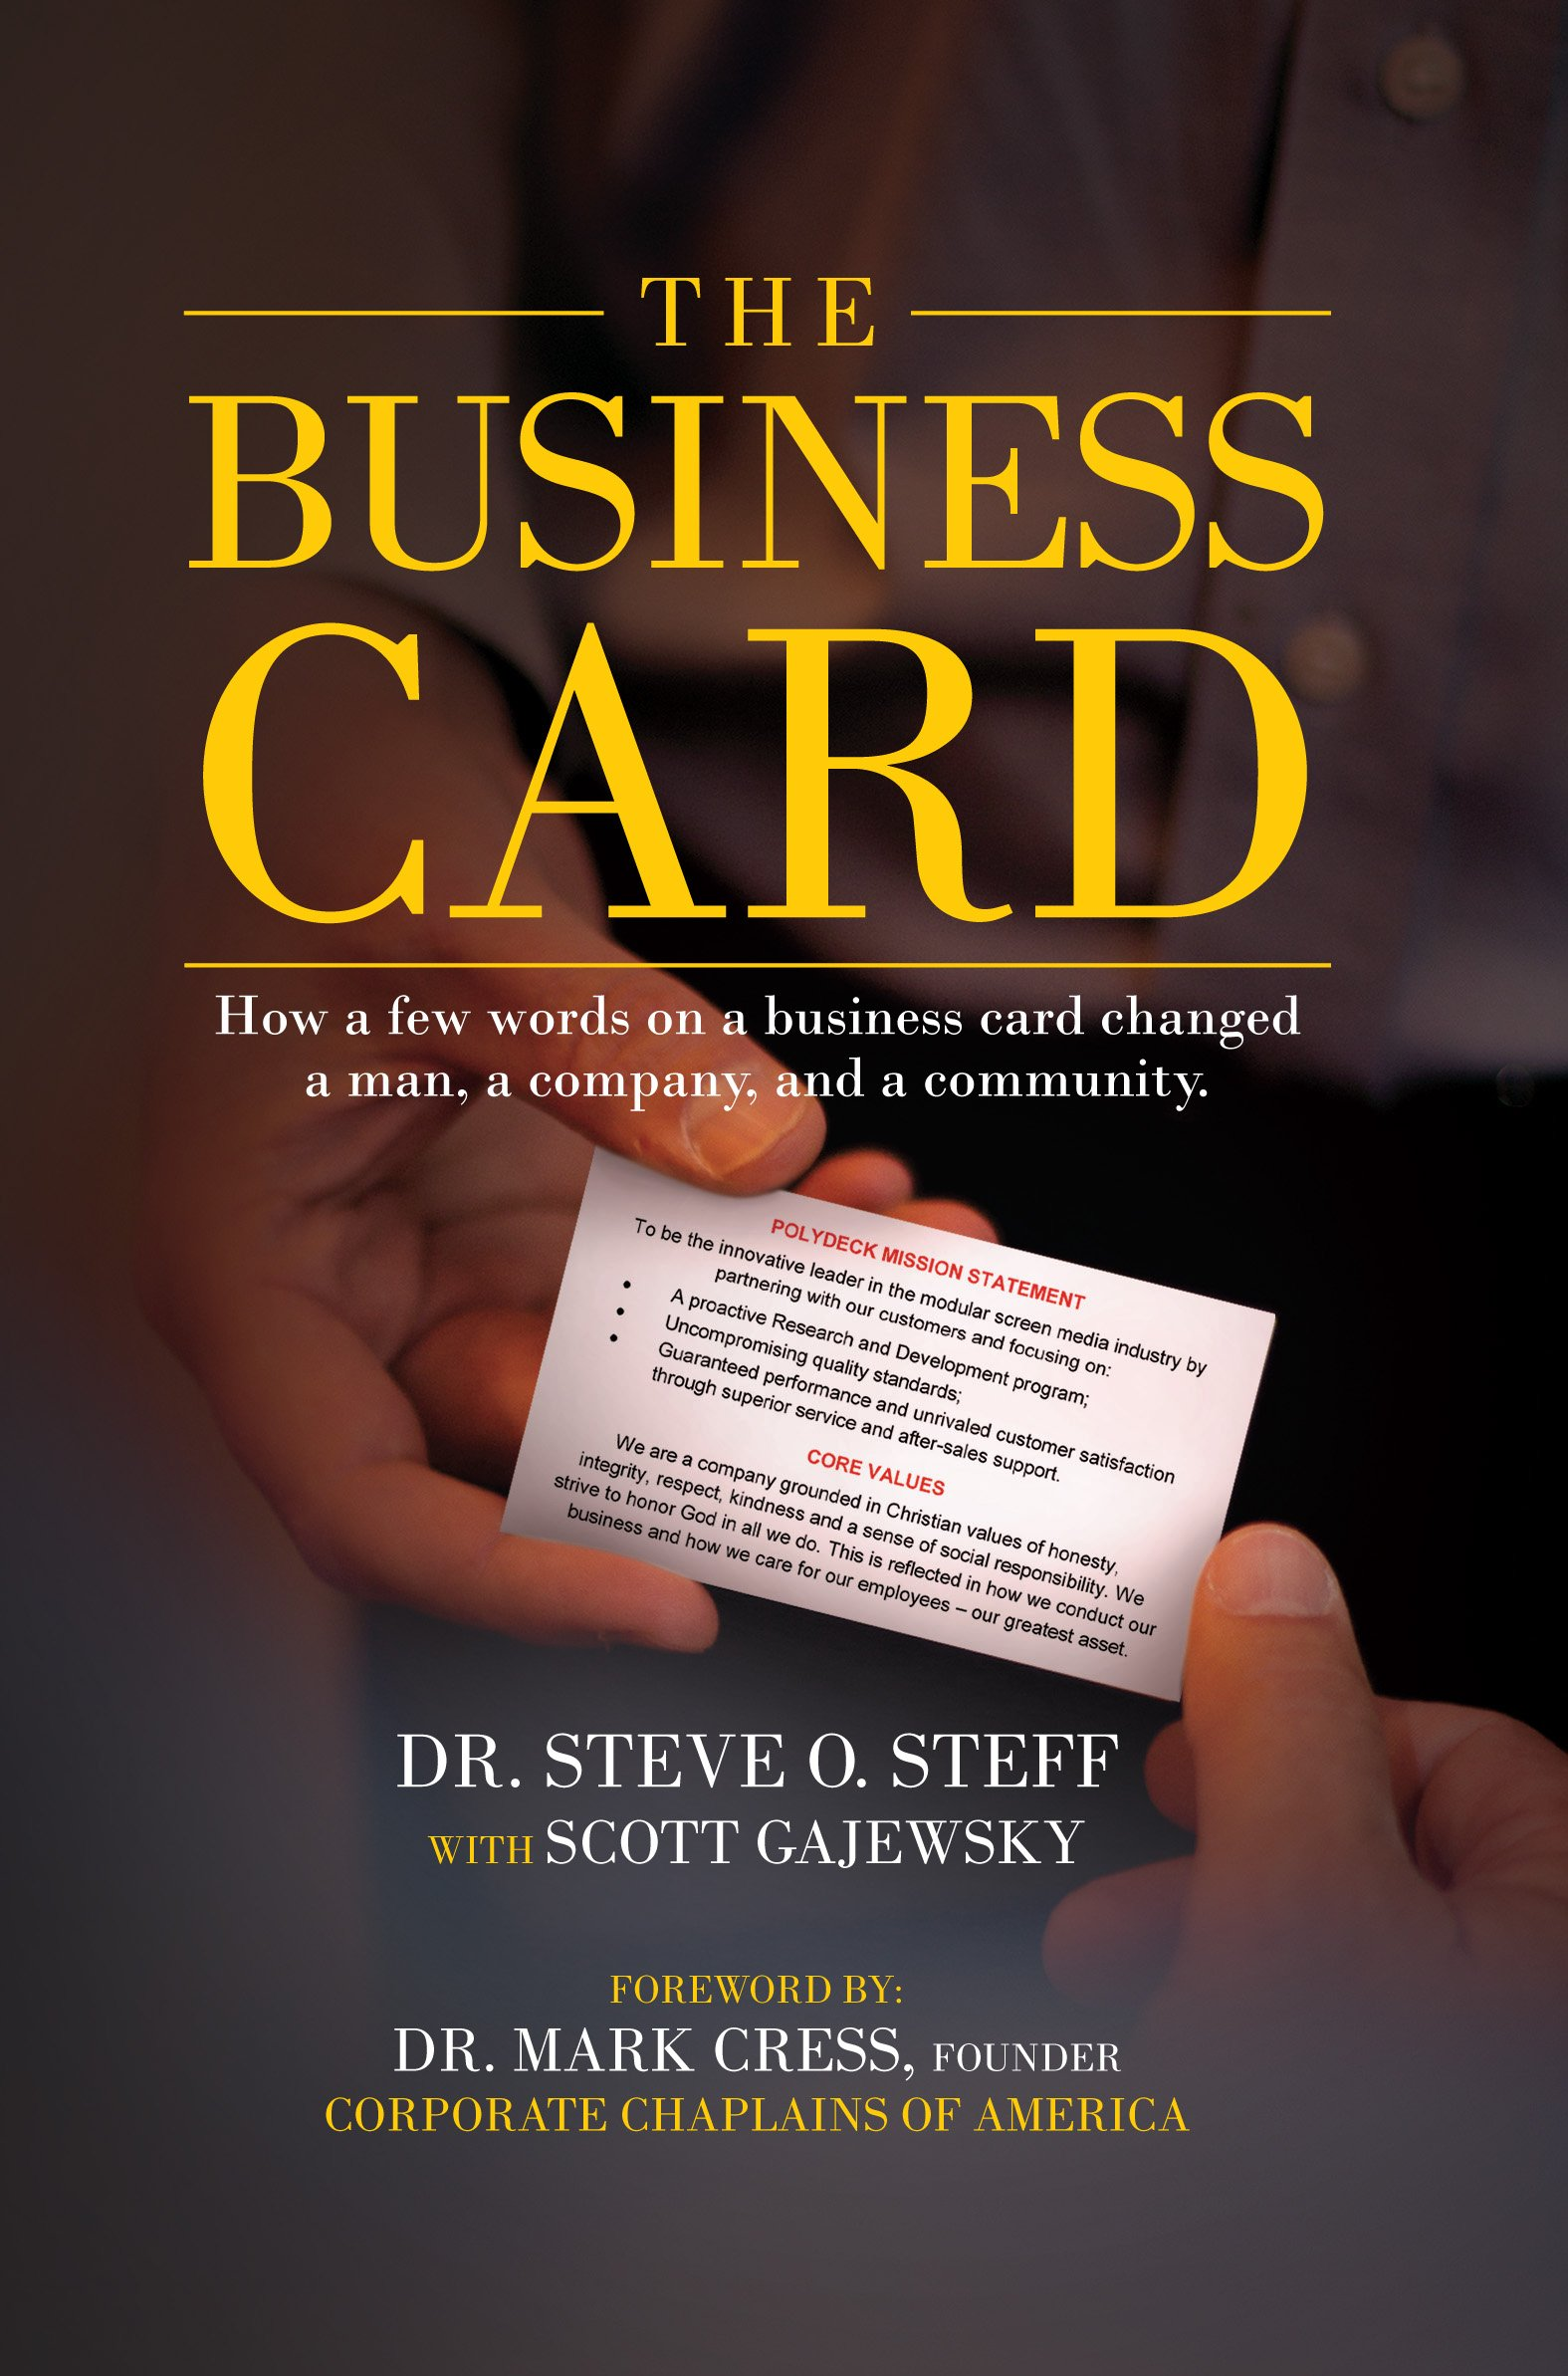 the business card dr steve o steff